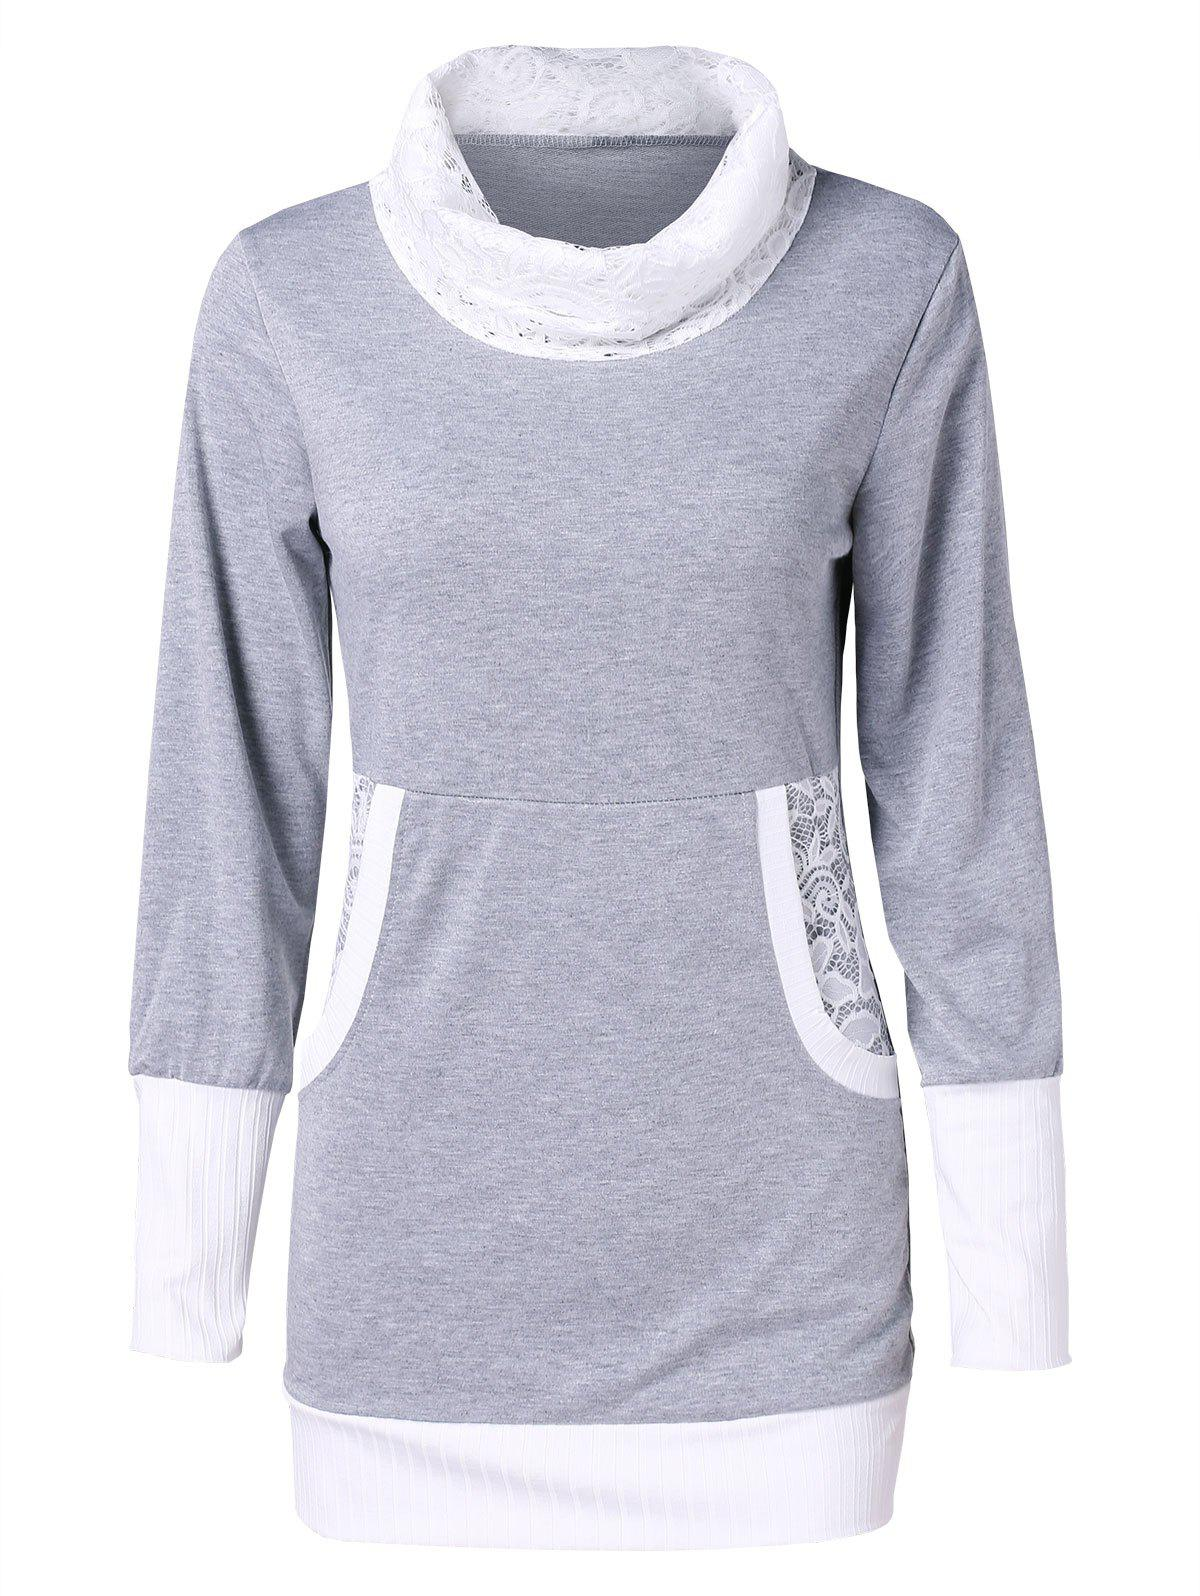 Two Tone Lace Insert Front Pockets Turtleneck Sweatshirt - GRAY L